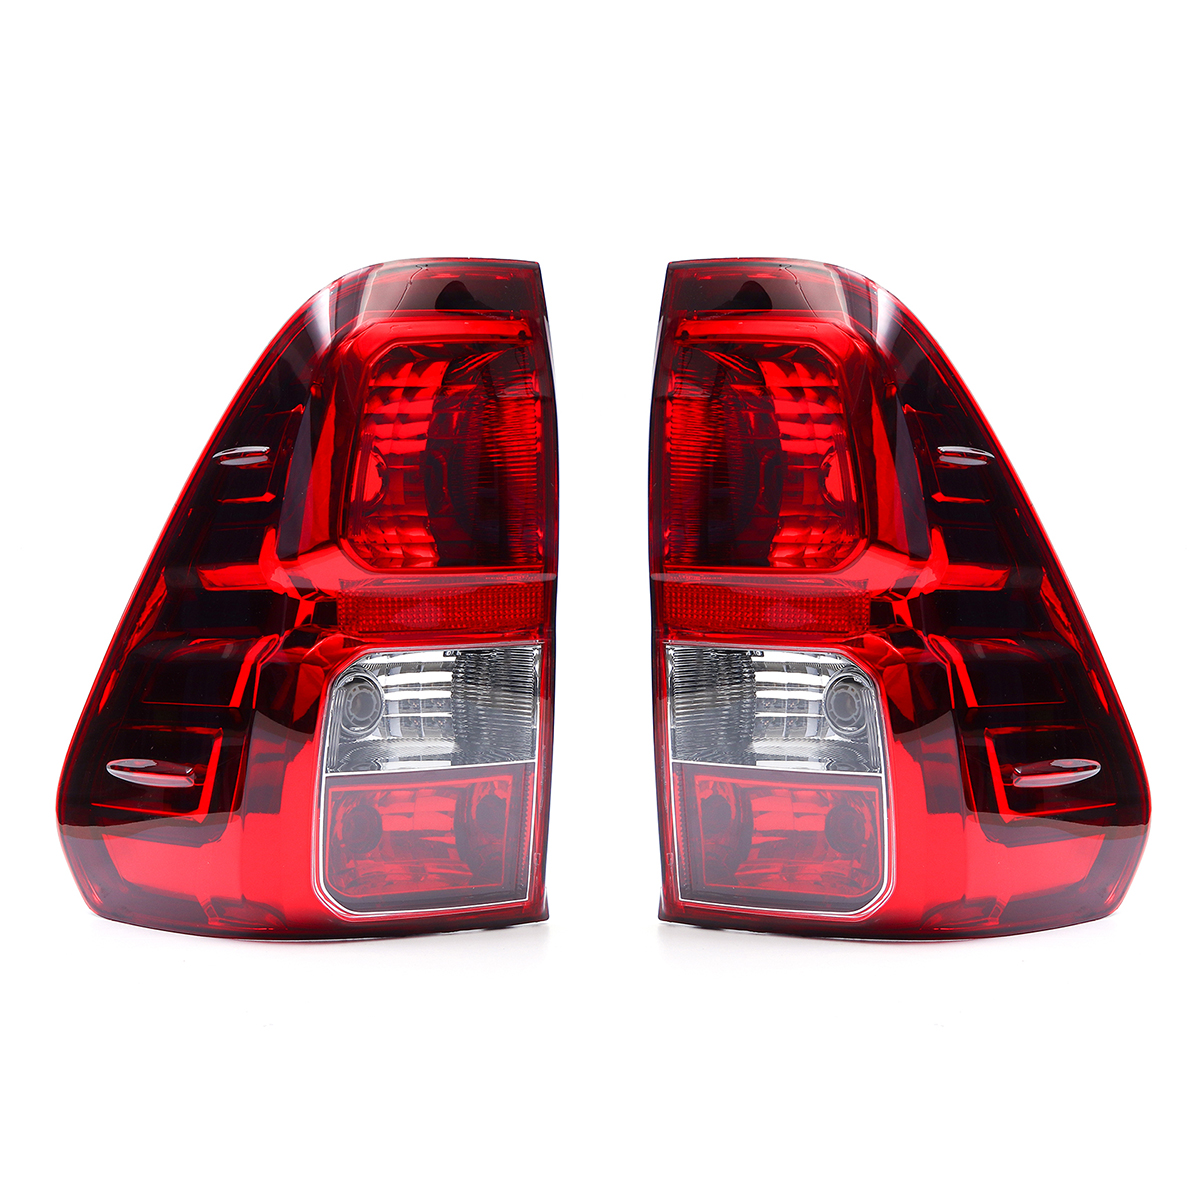 Car Rear Left/Right Tail Light Brake Lamp Assembly without Bulb for Toyota Hilux Revo 2015-2018